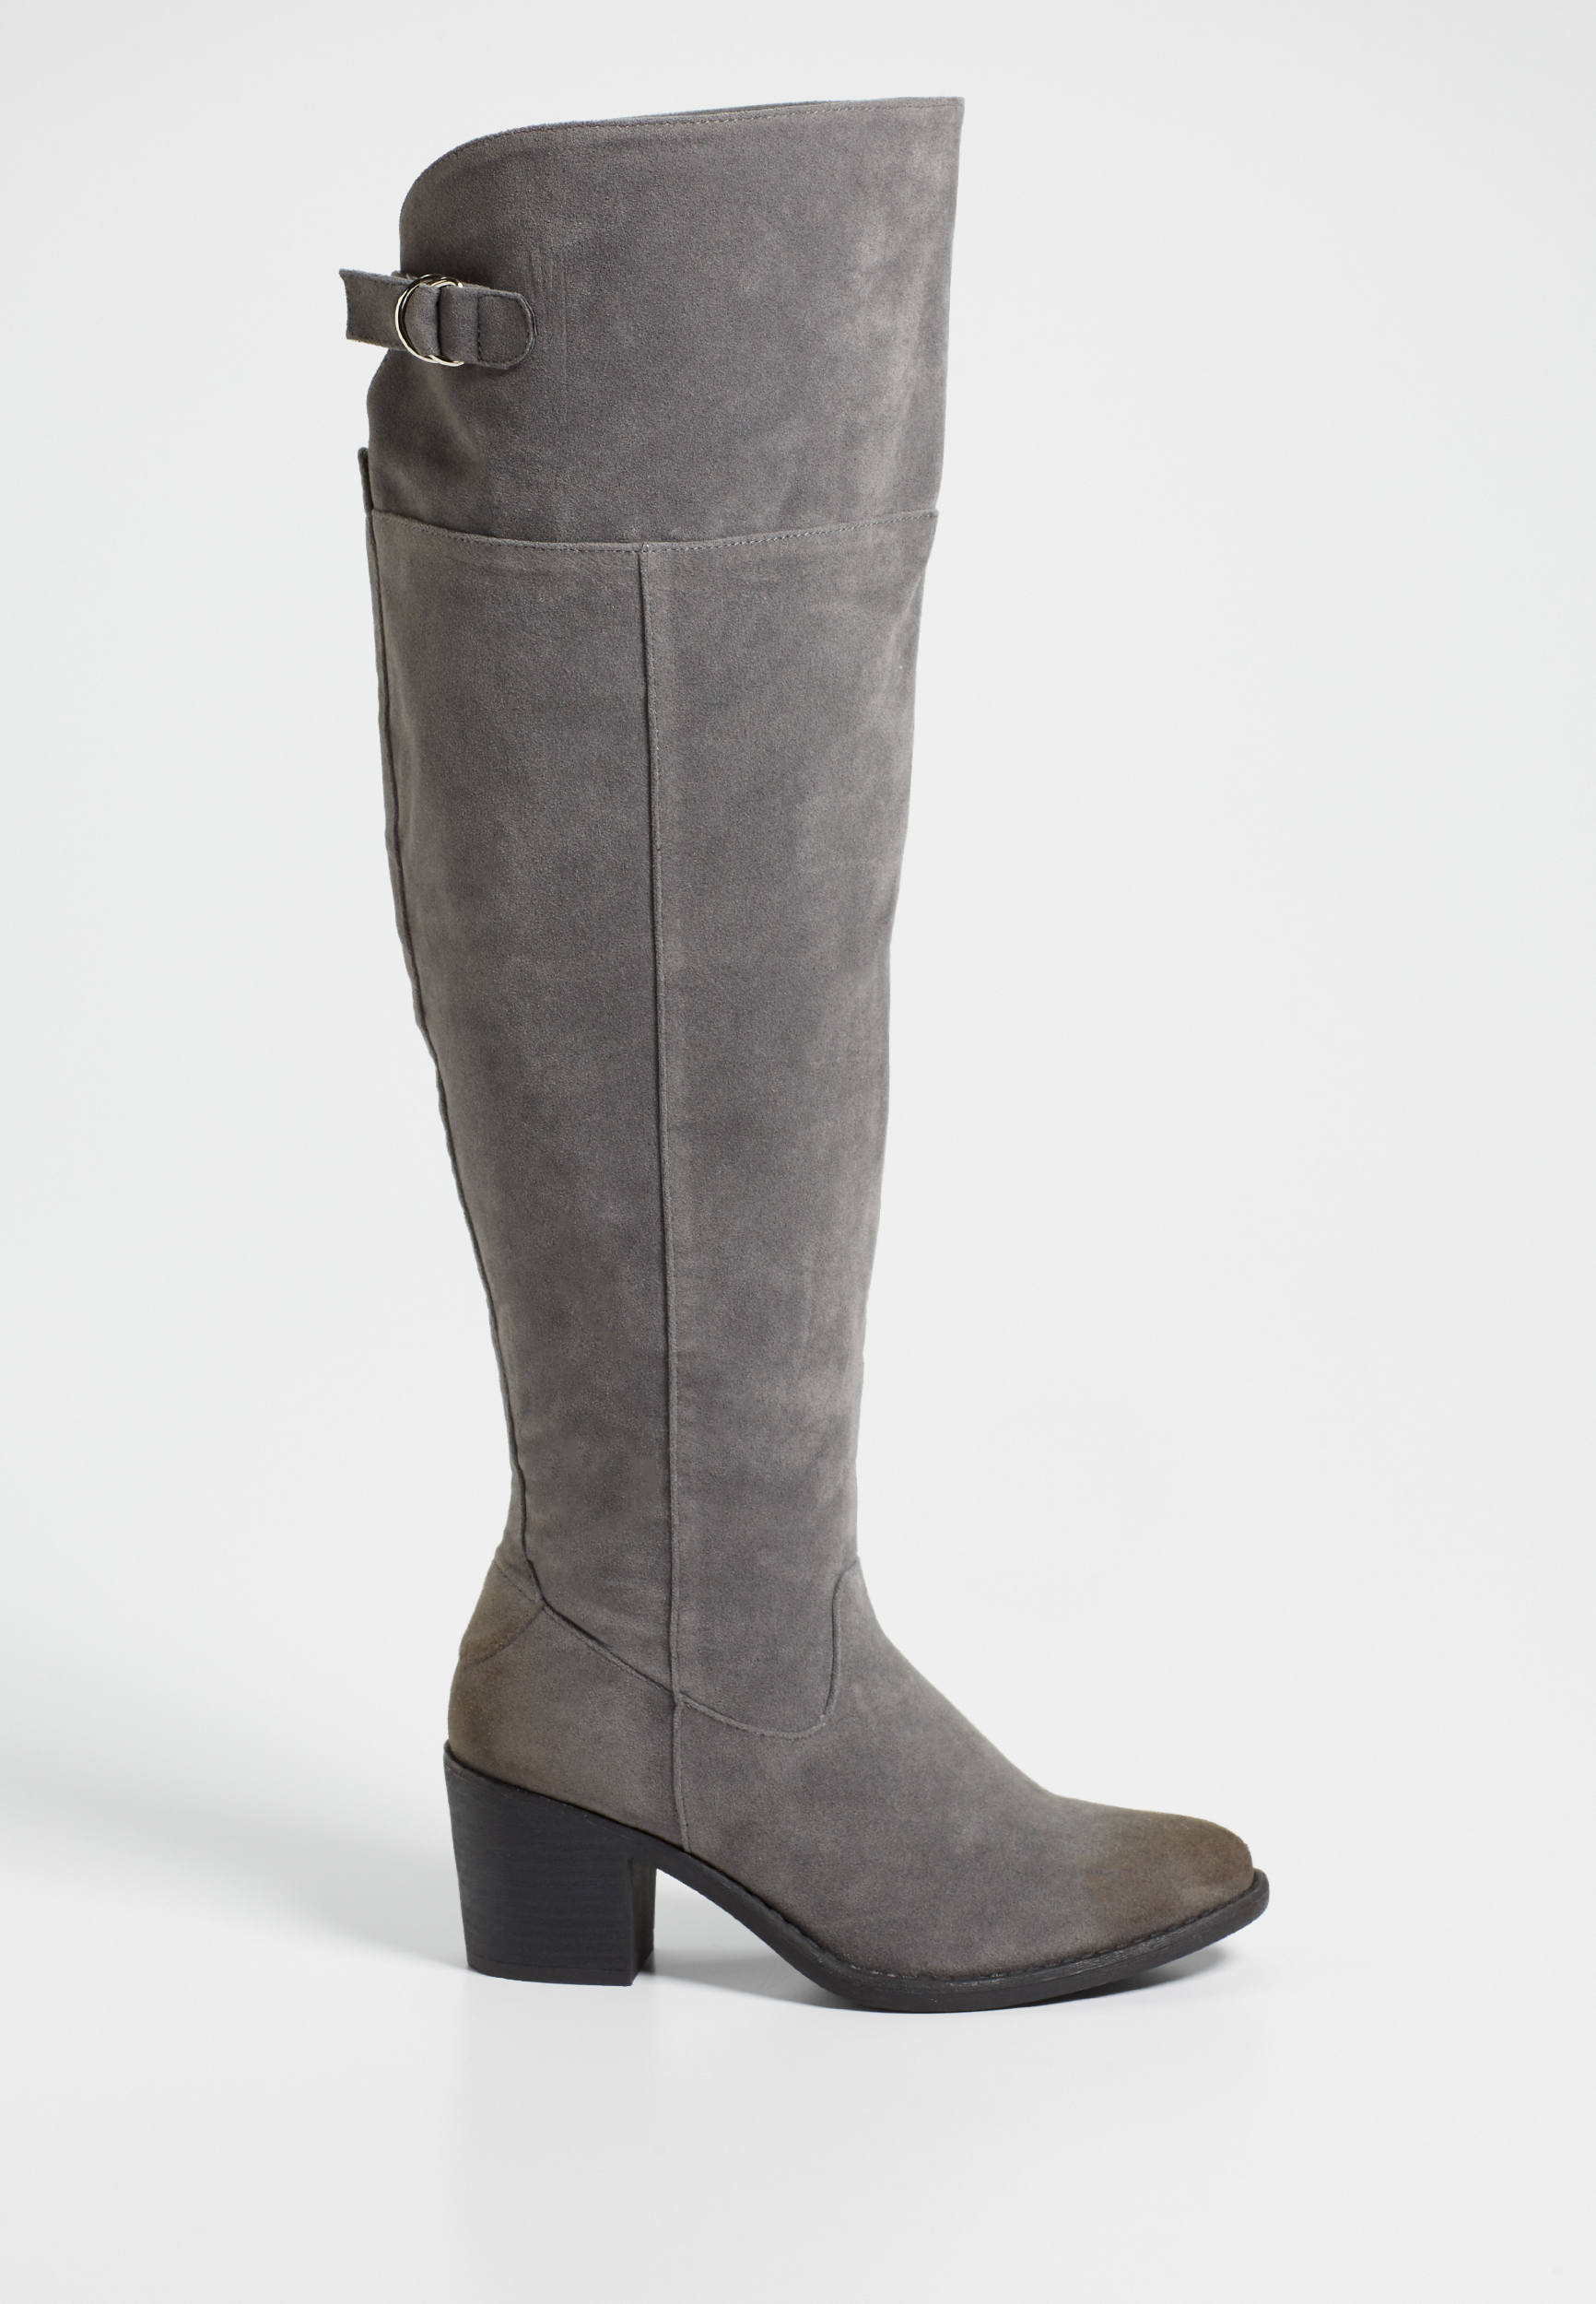 3f25cd1cfb Sabrina wide calf faux suede over the knee boot in gray | maurices